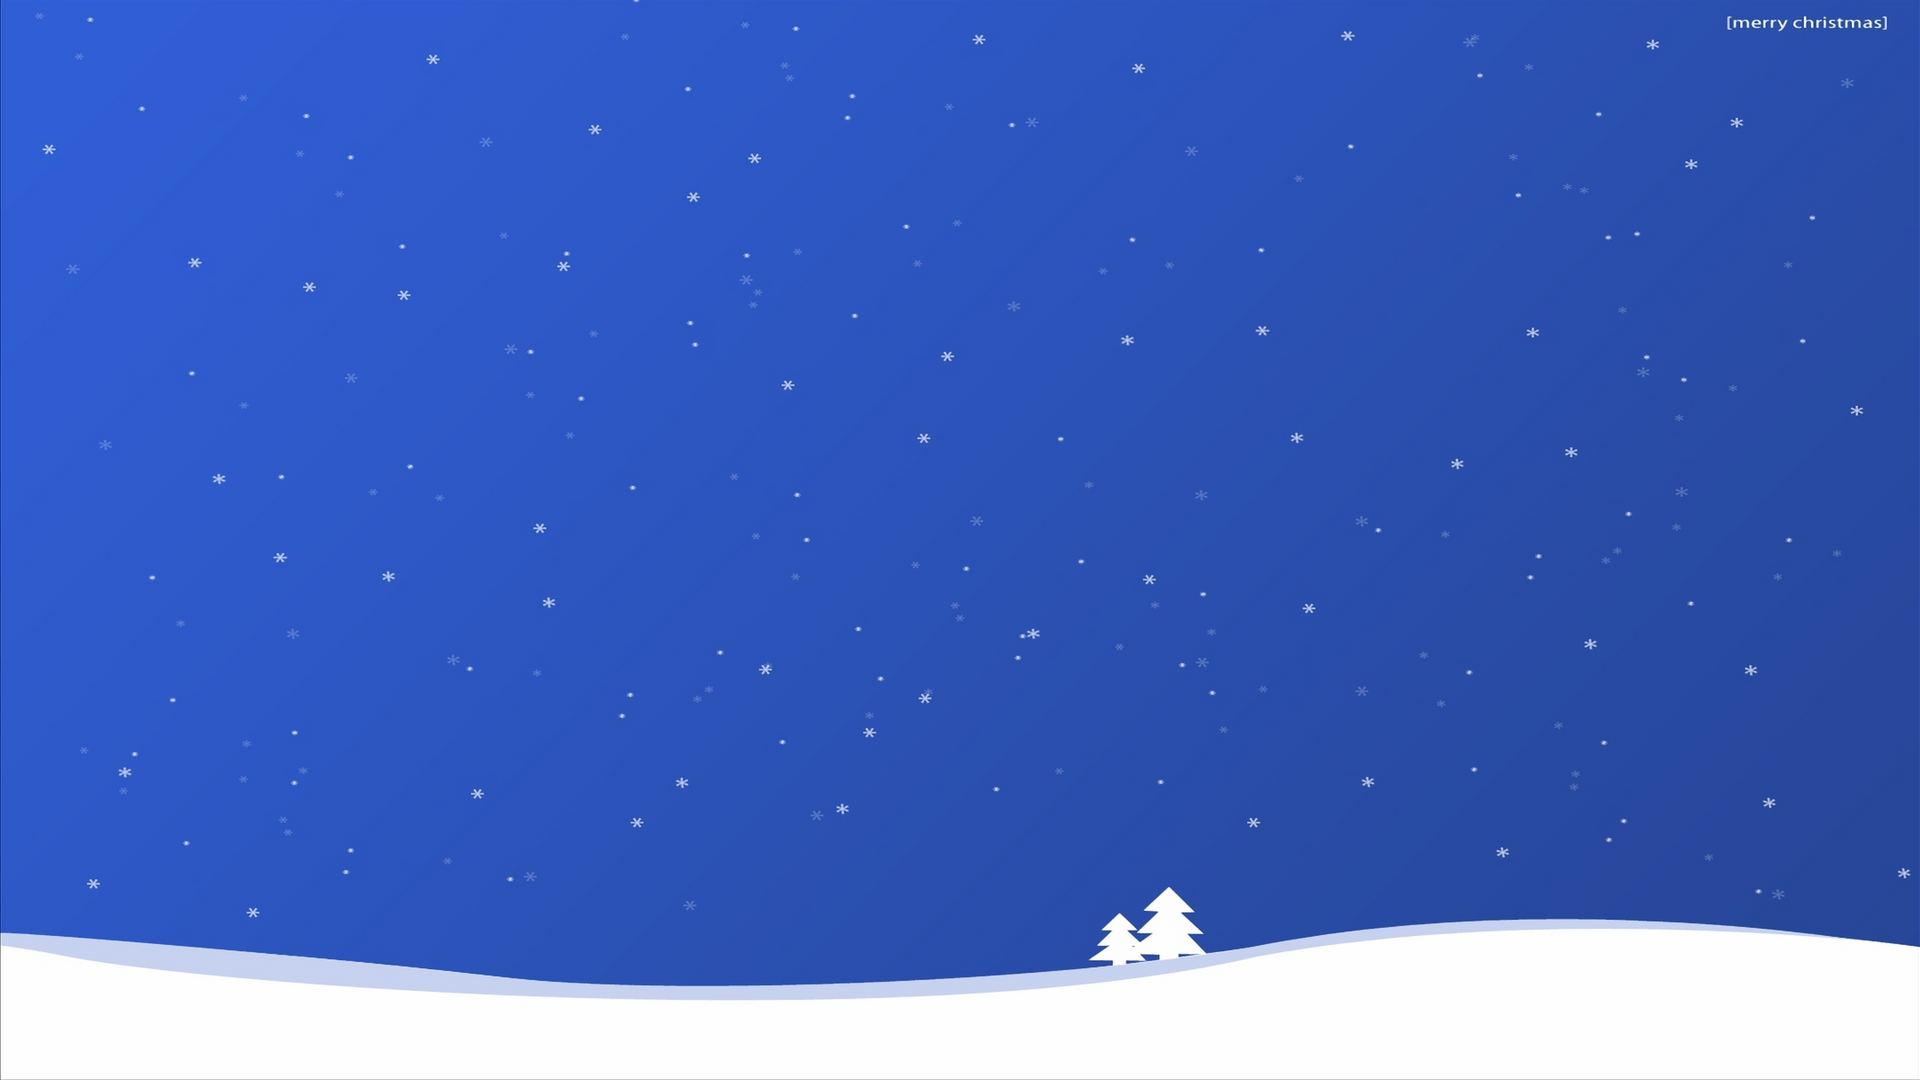 Hd Christmas Wallpaper 1920x1080 The Momment 1920x1080